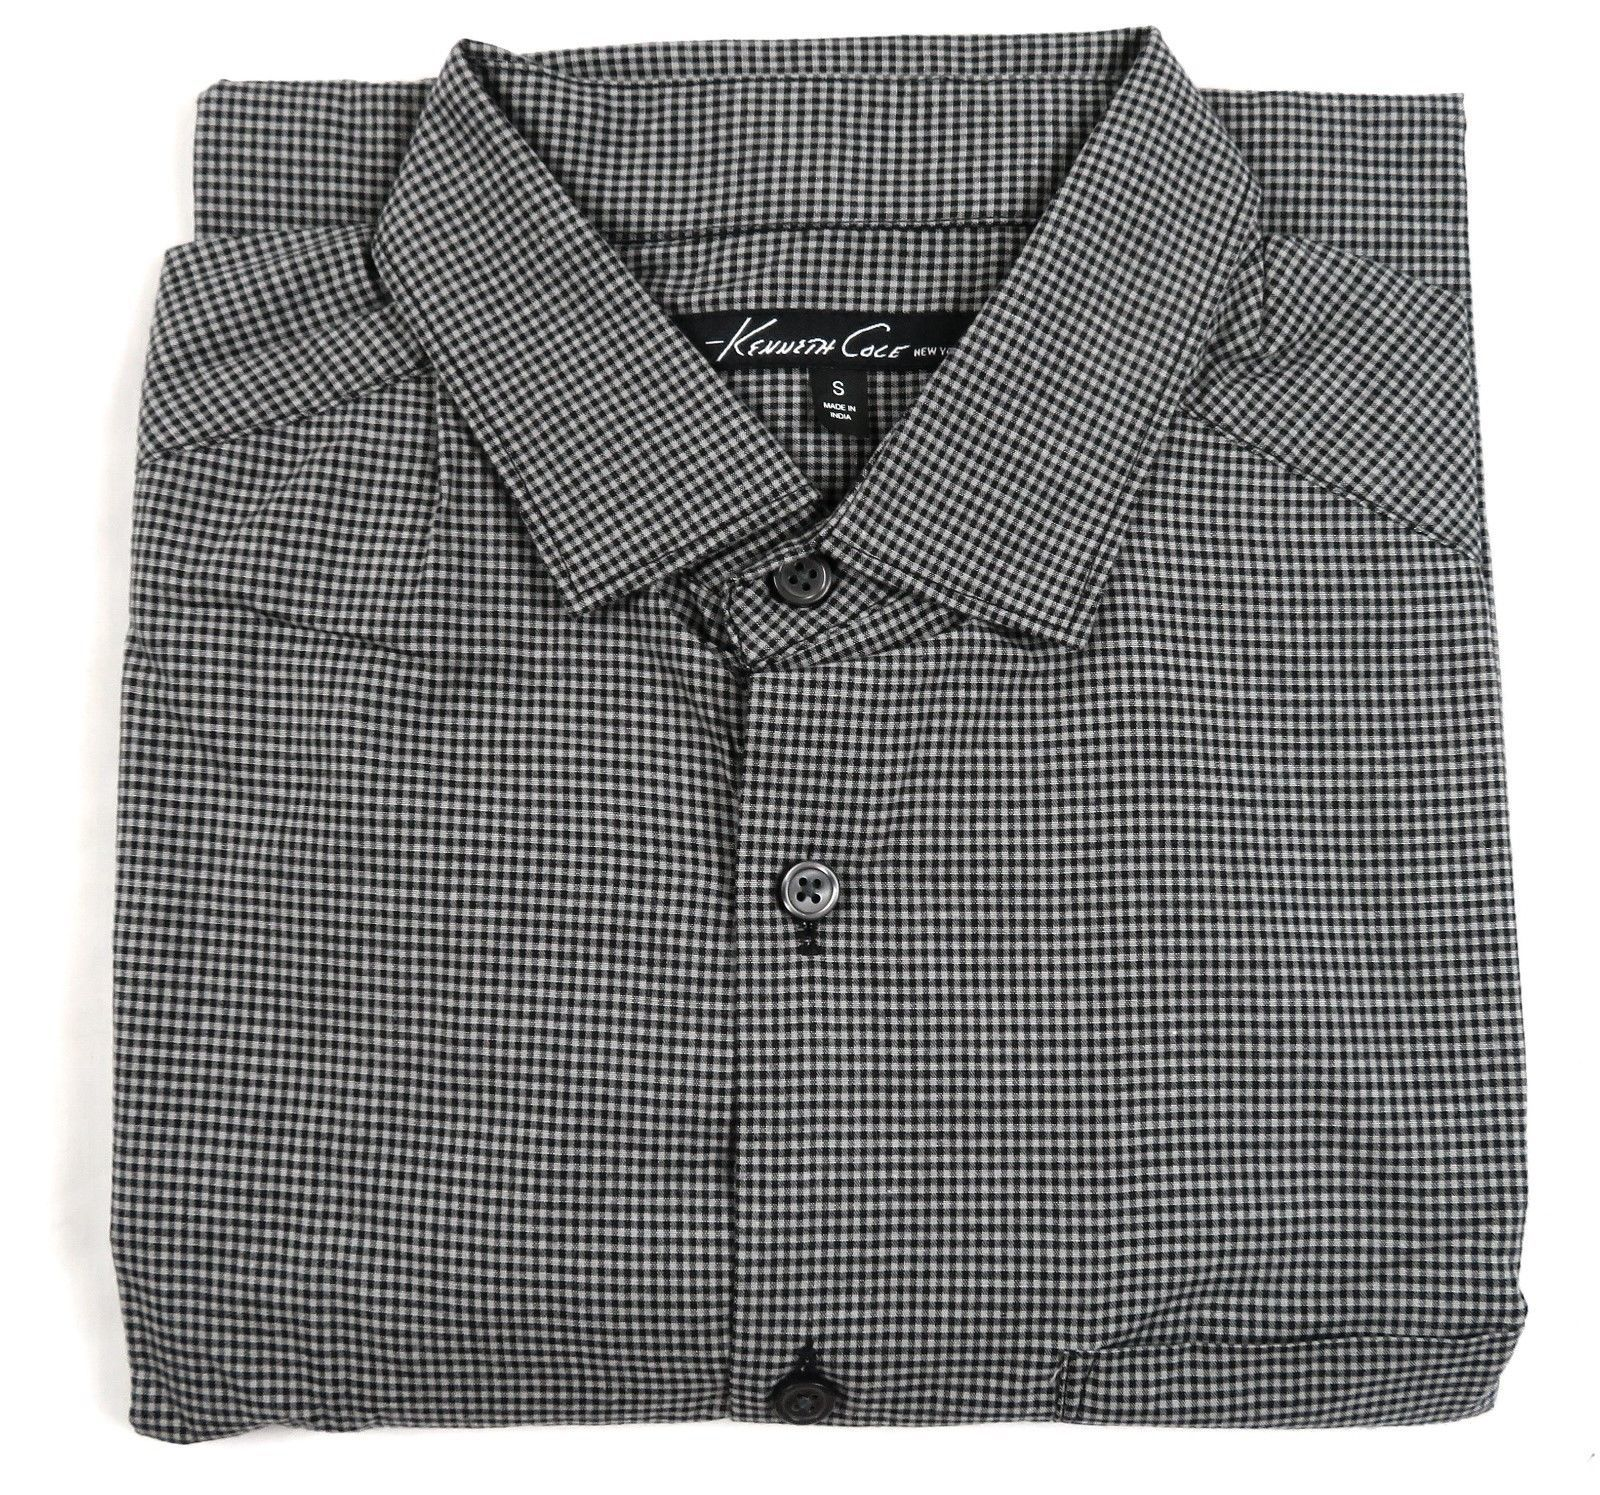 Kenneth Cole New York Shirt Men's Long Sleeve Button-down #42